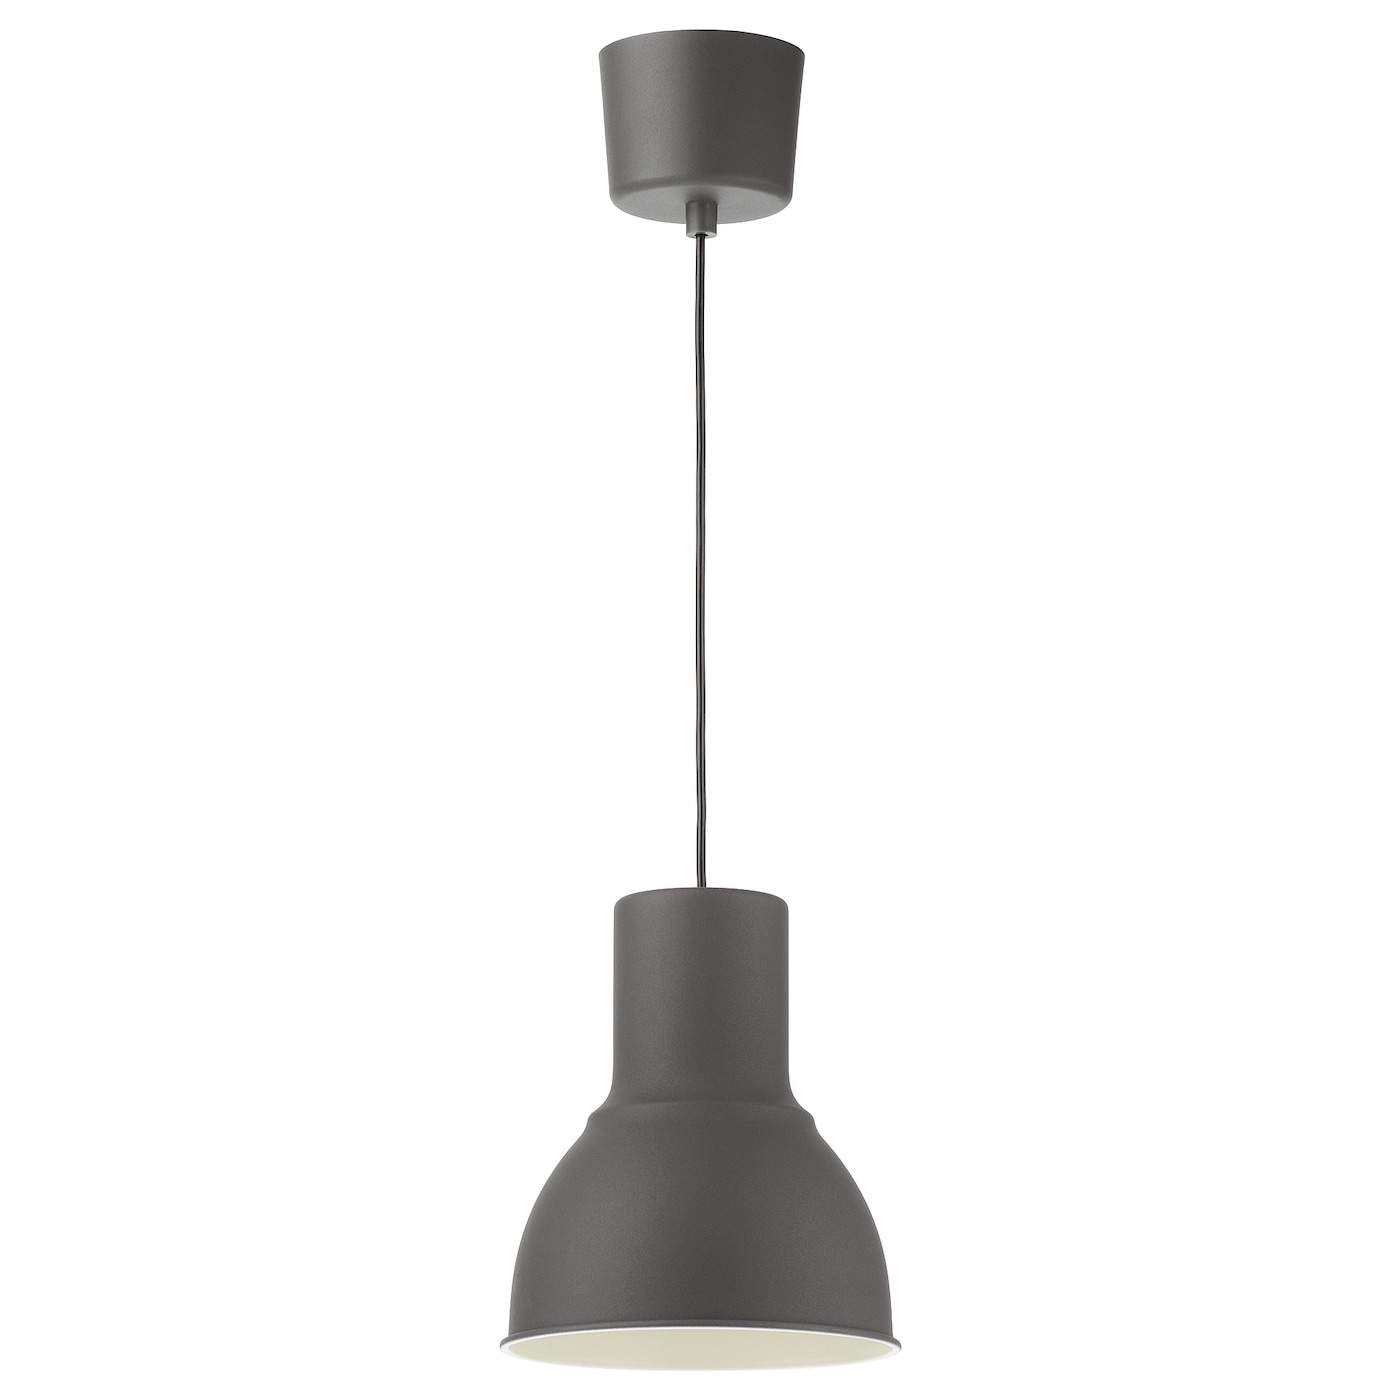 IKEA HEKTAR suspension